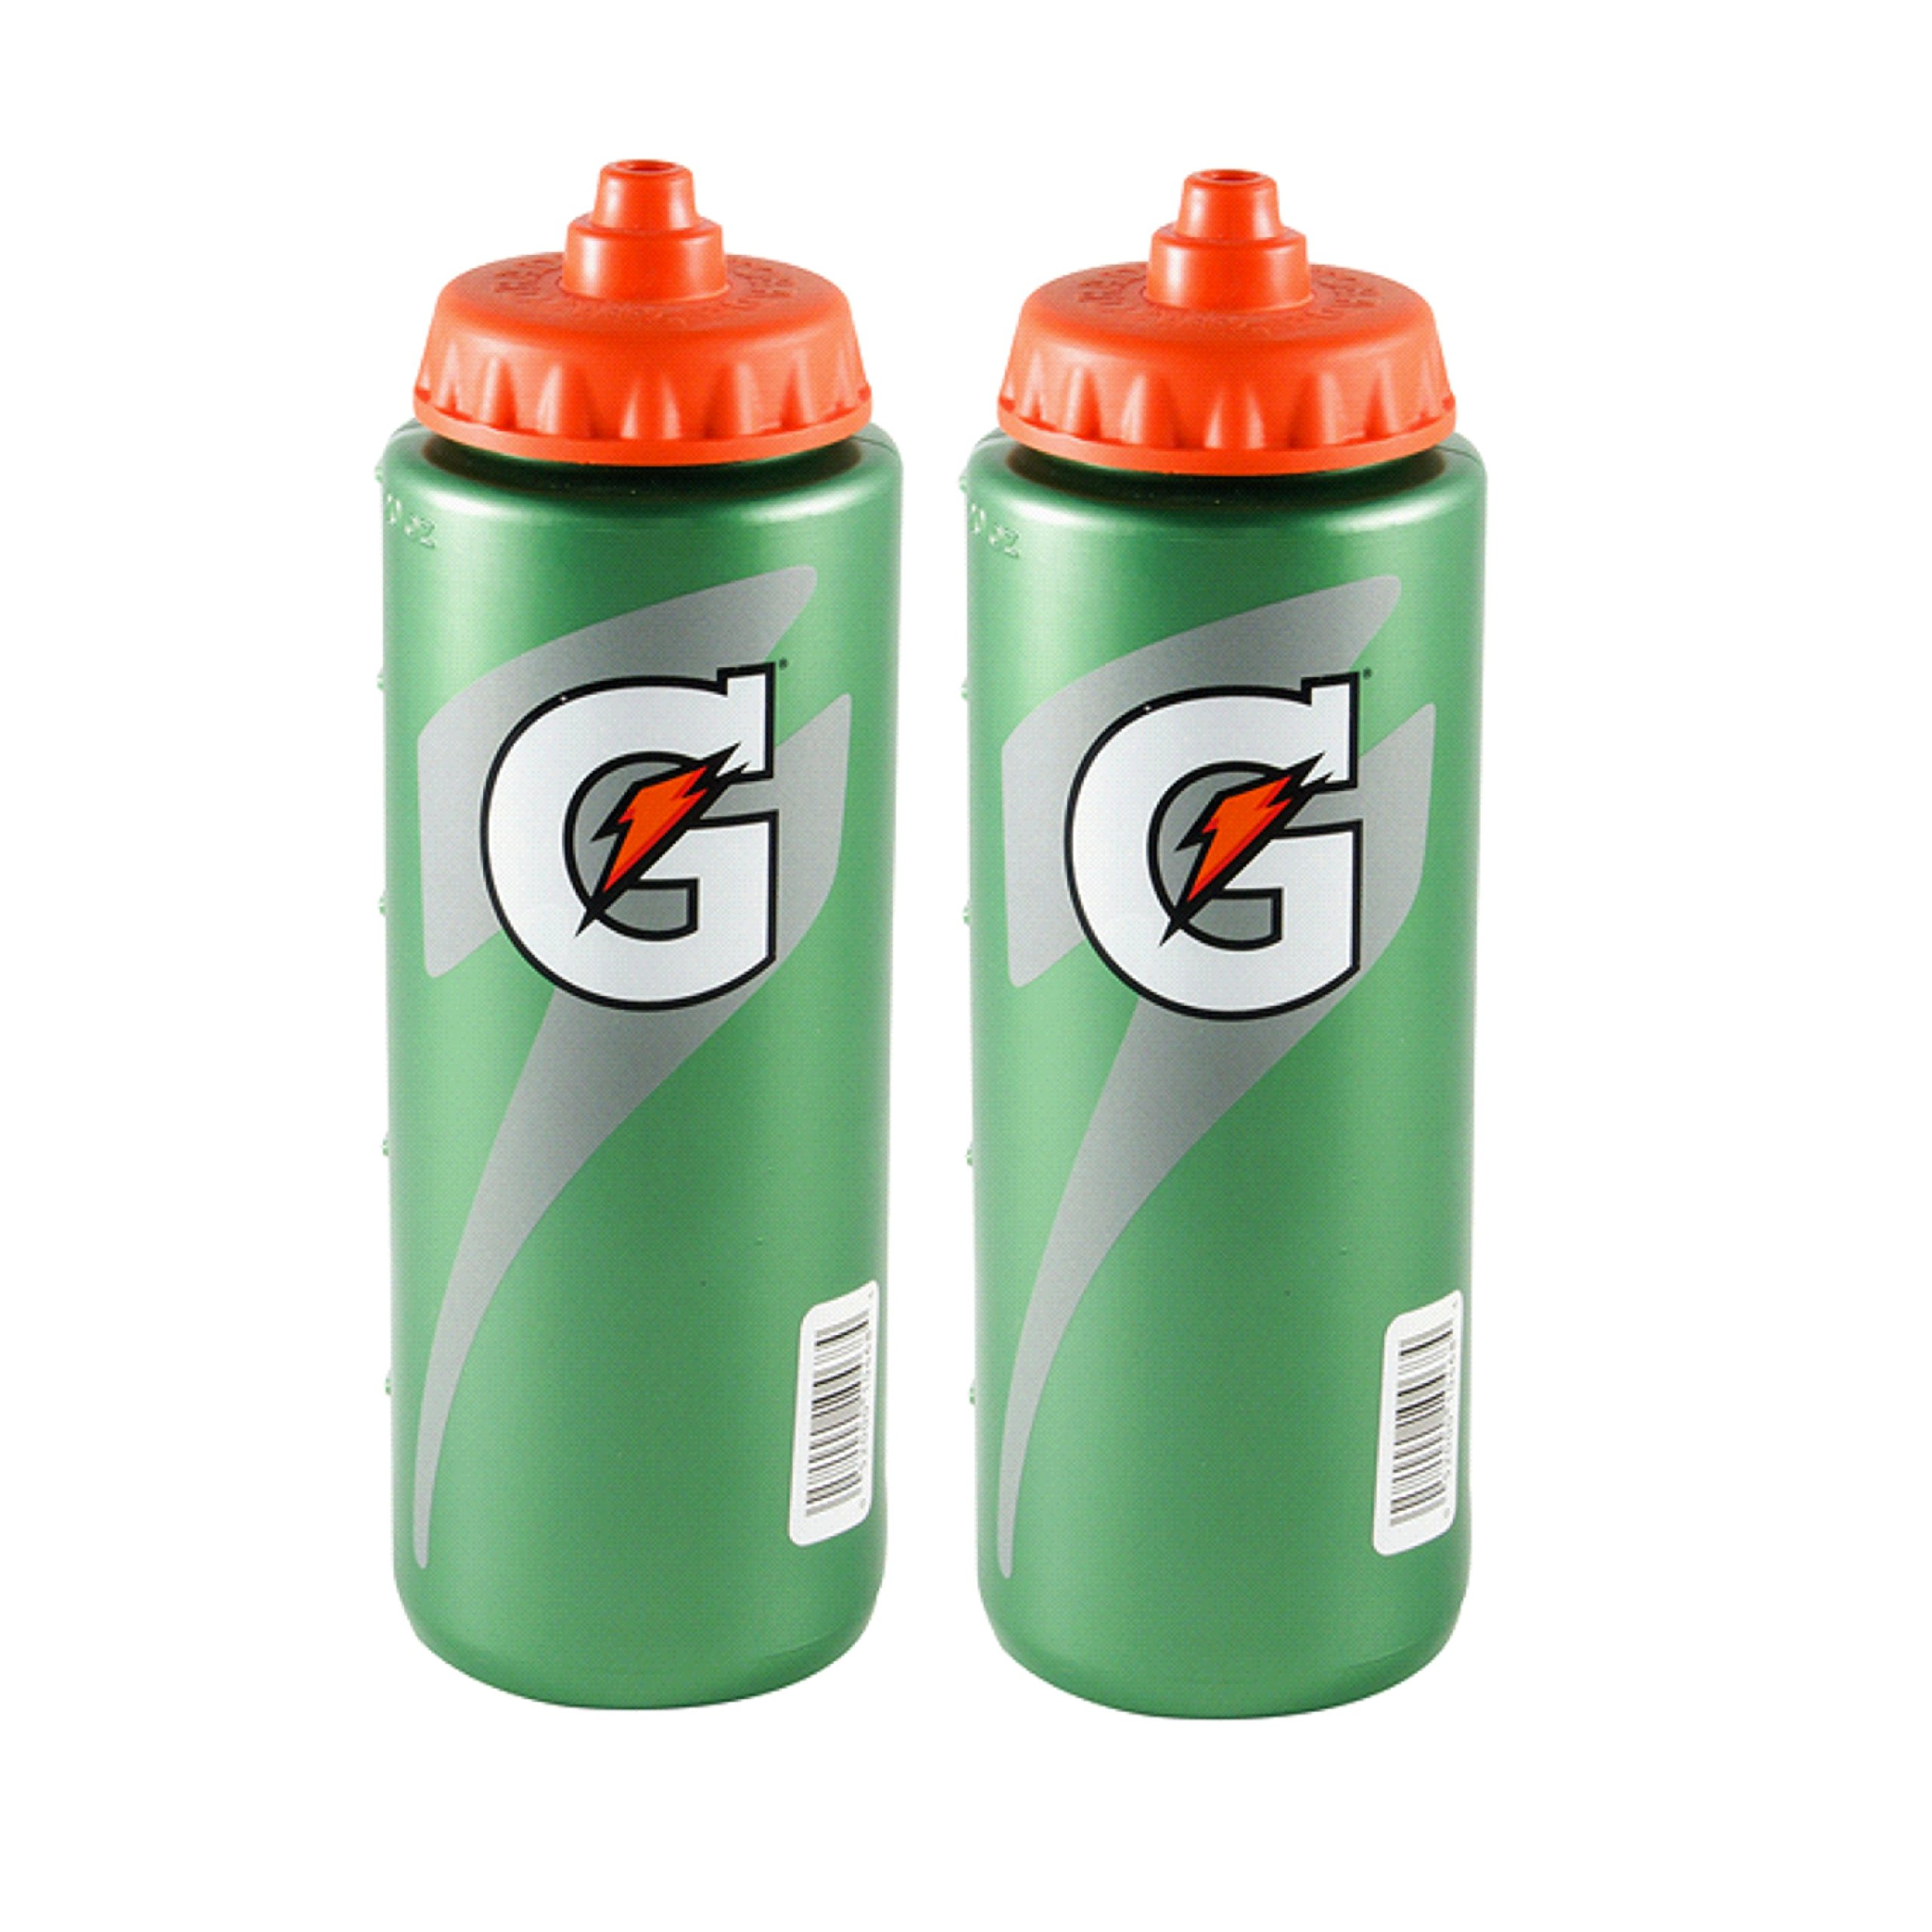 Gatorade Towels Amazon: Spill Proof Squeeze Top, Just Point And Squeeze Holds 20